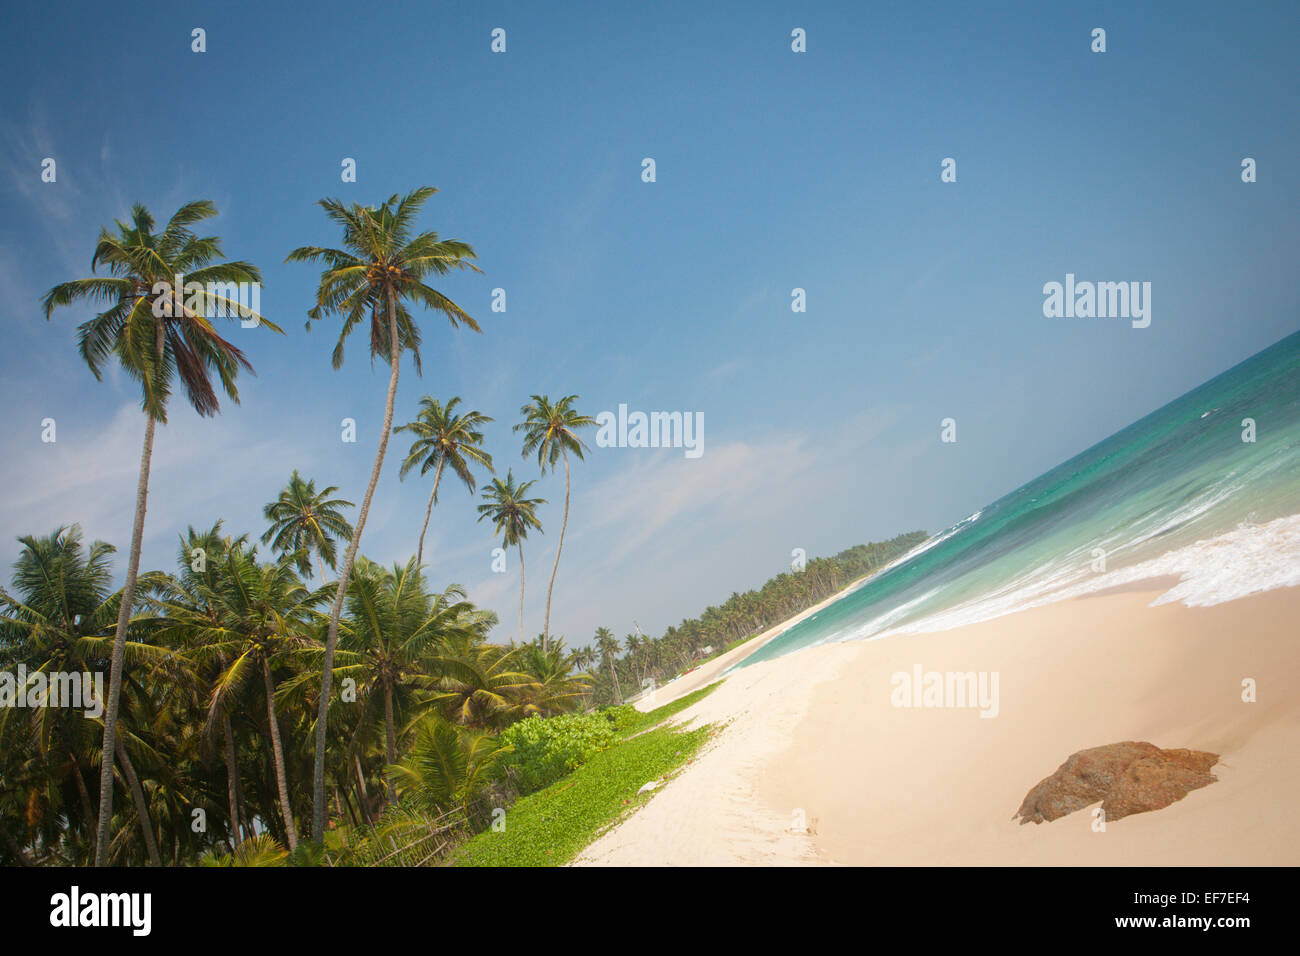 DESERTED BEACH WITH PALM TREES - Stock Image